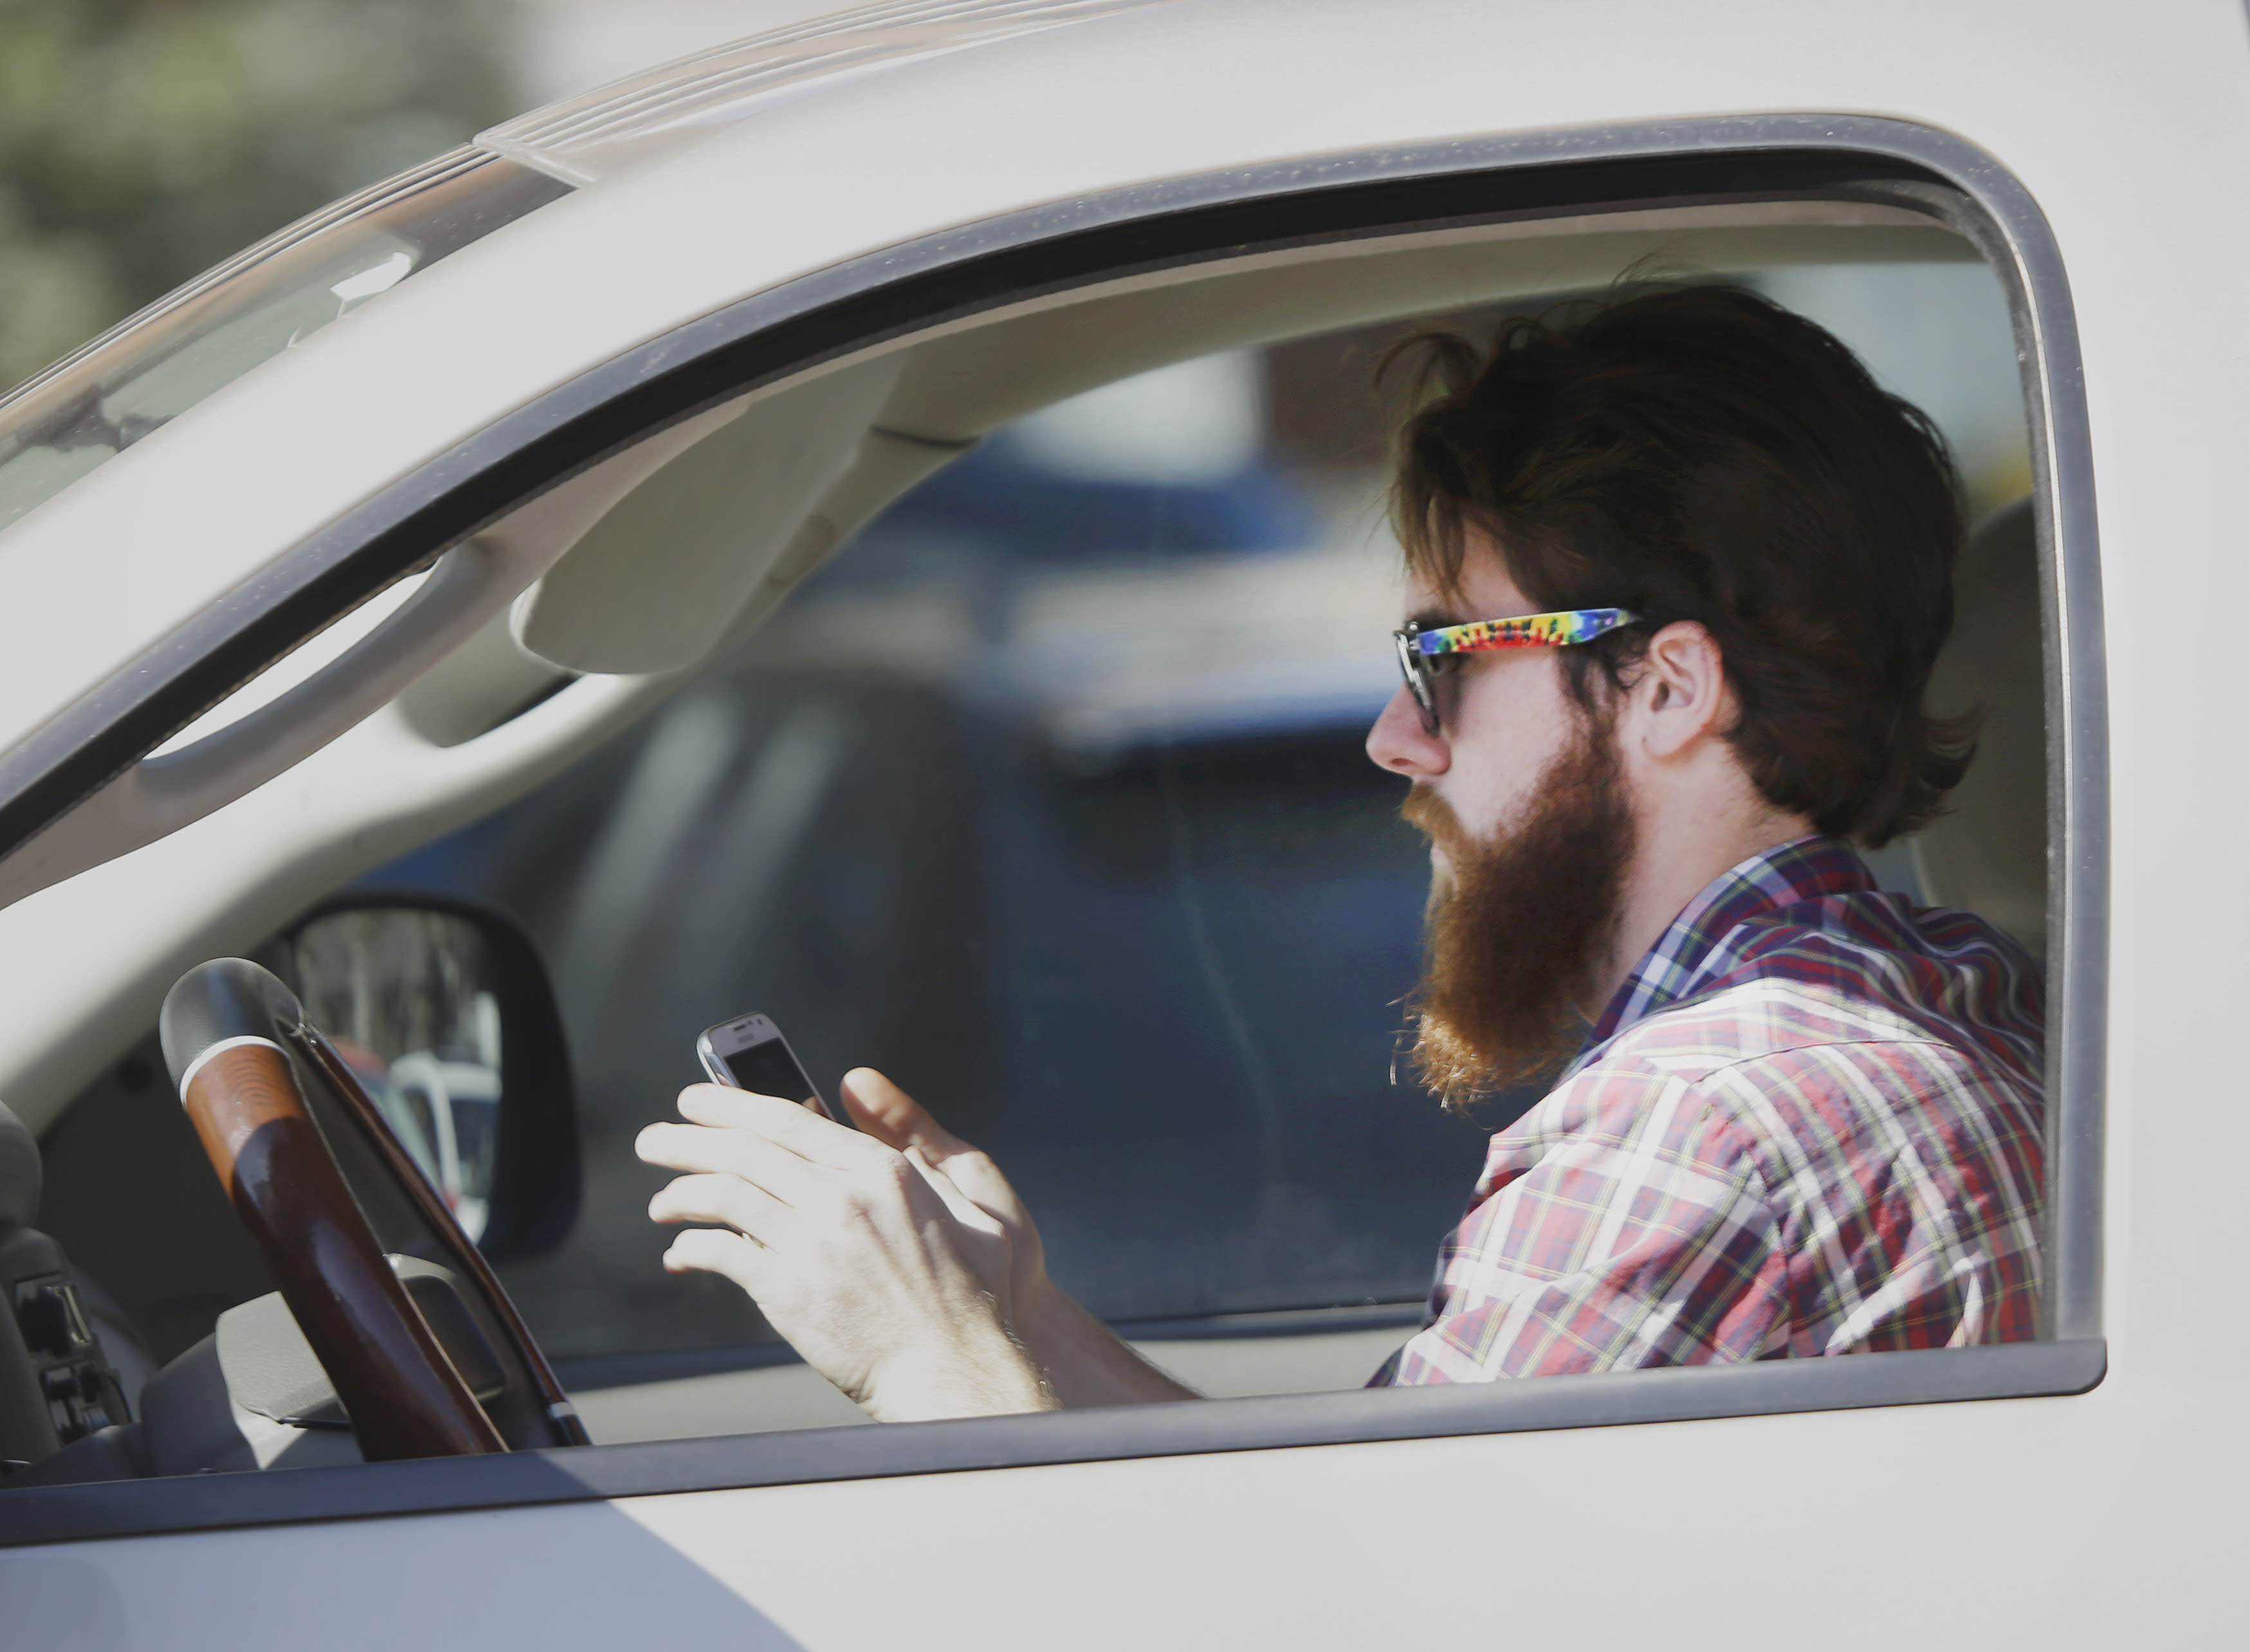 Cell phones are causing more and more car crashes